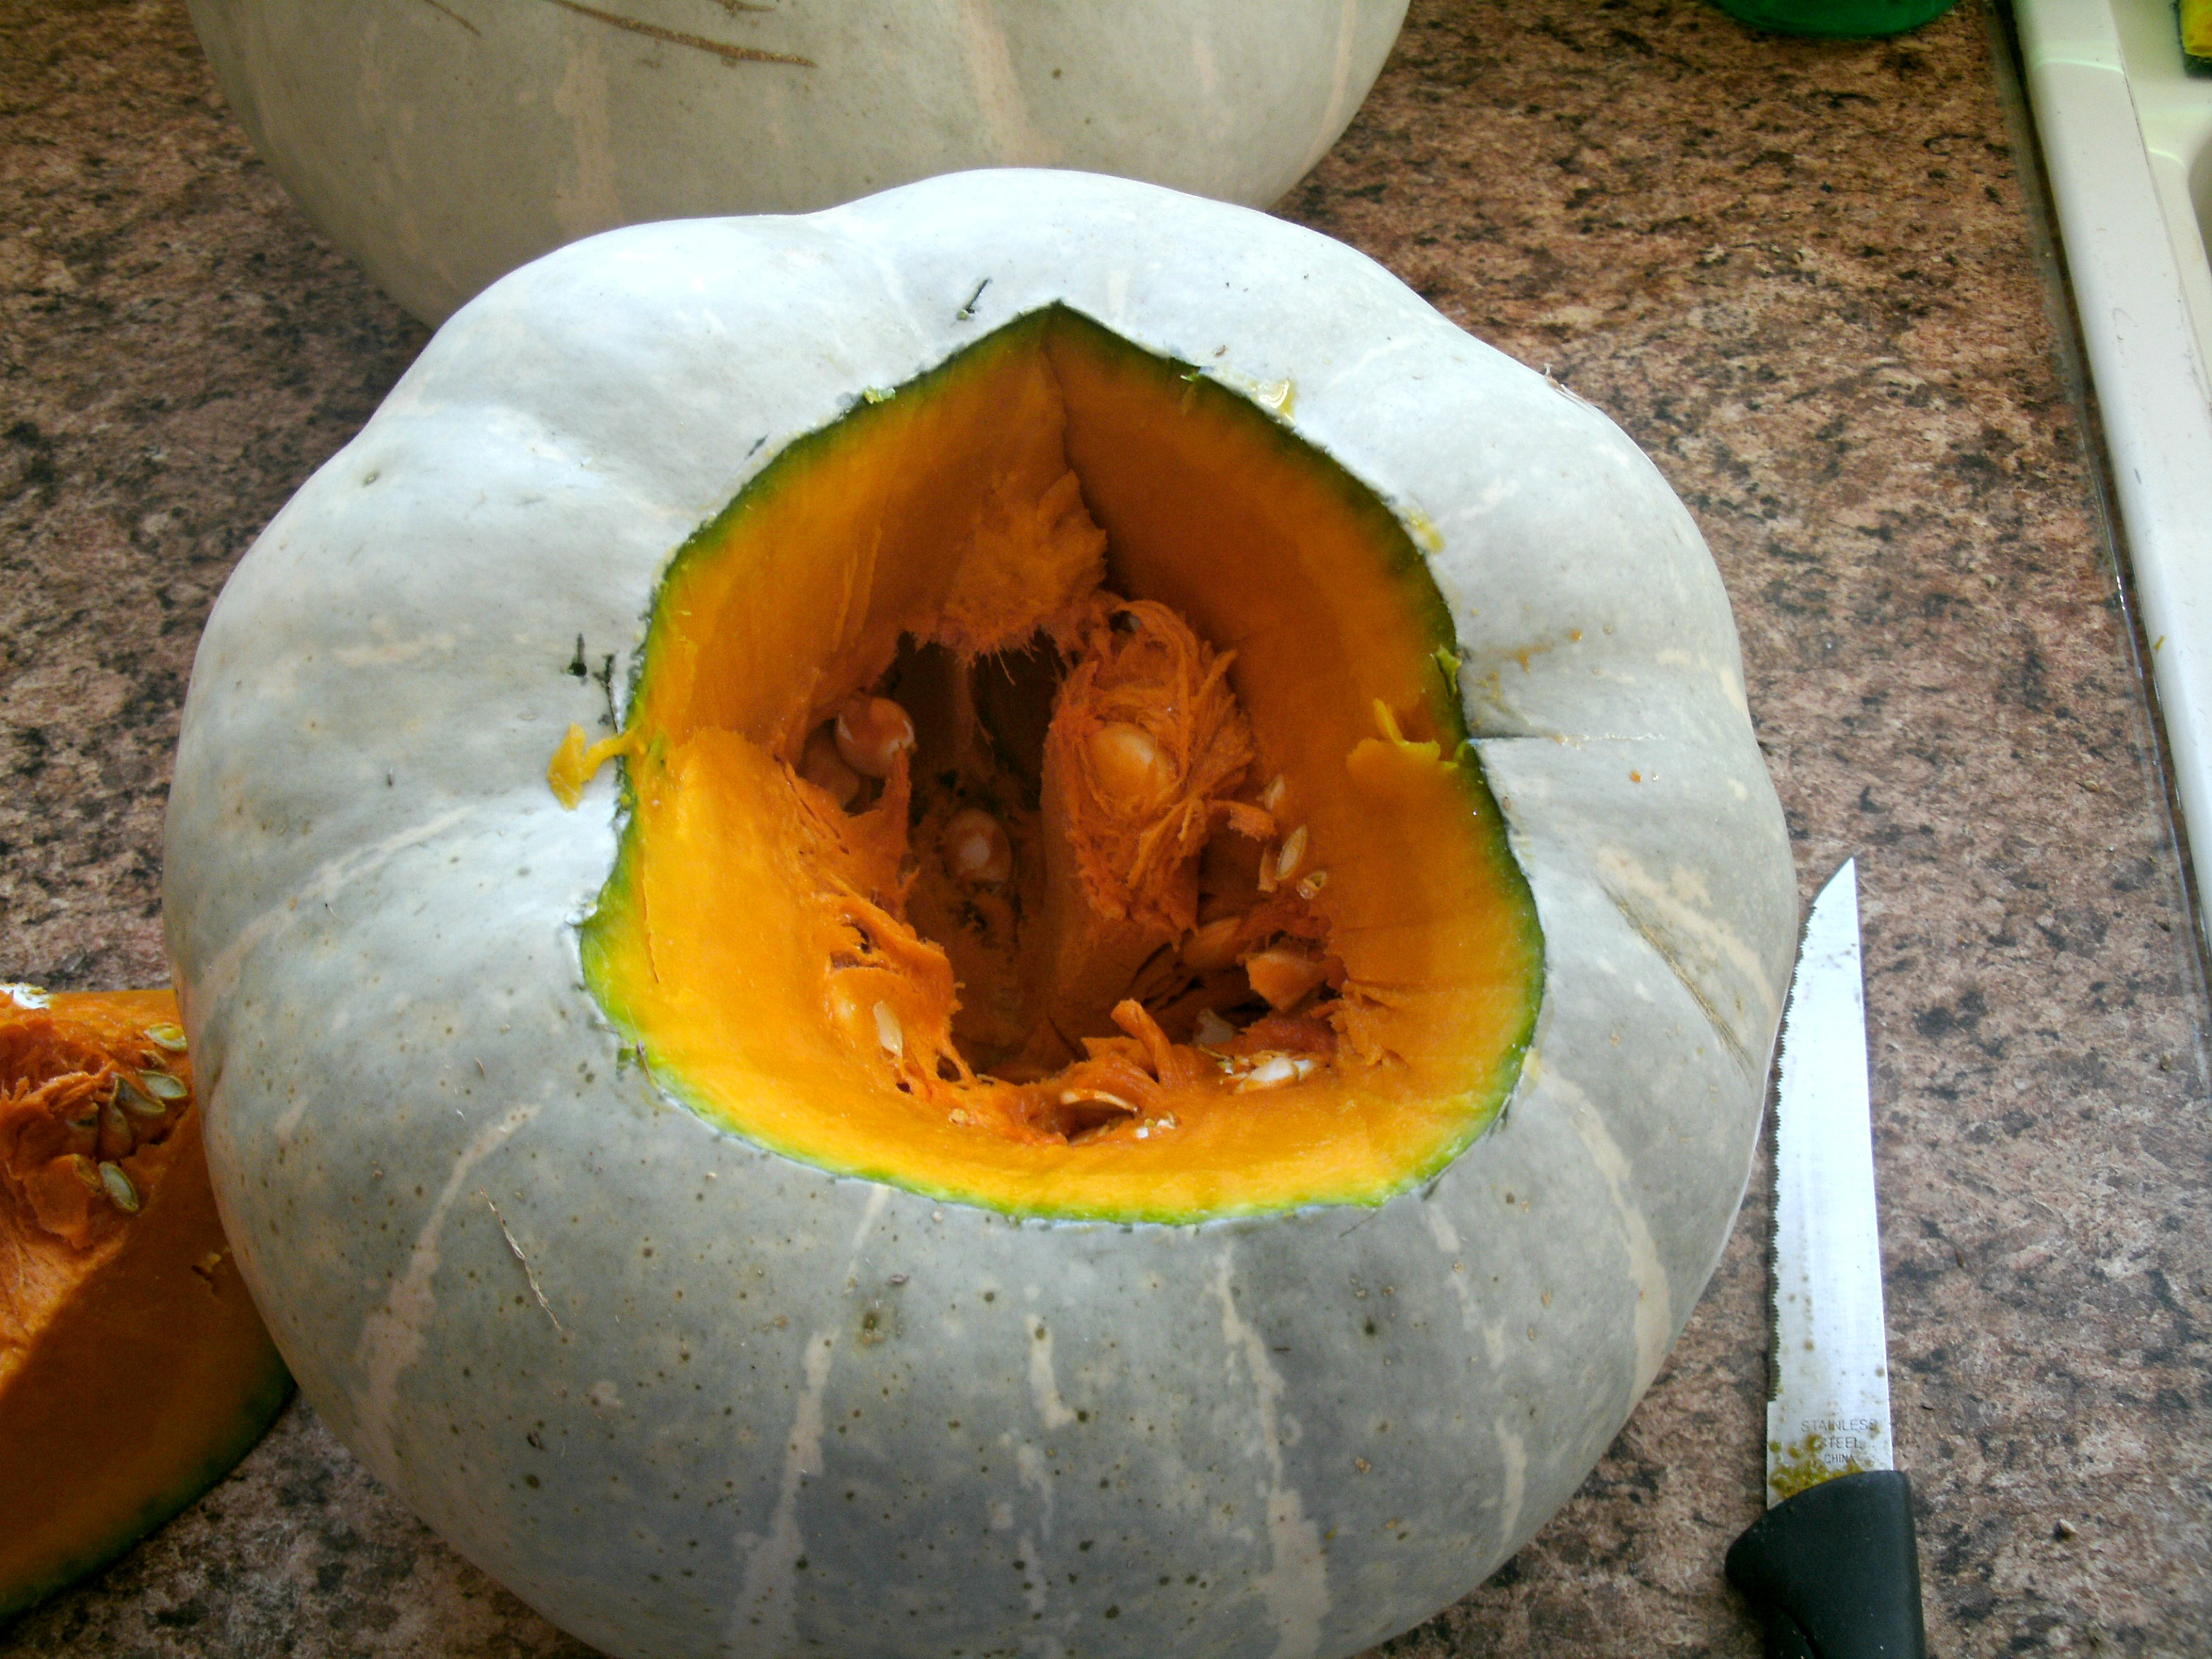 5 Reasons To Plant Silver Moon White Pumpkins In The